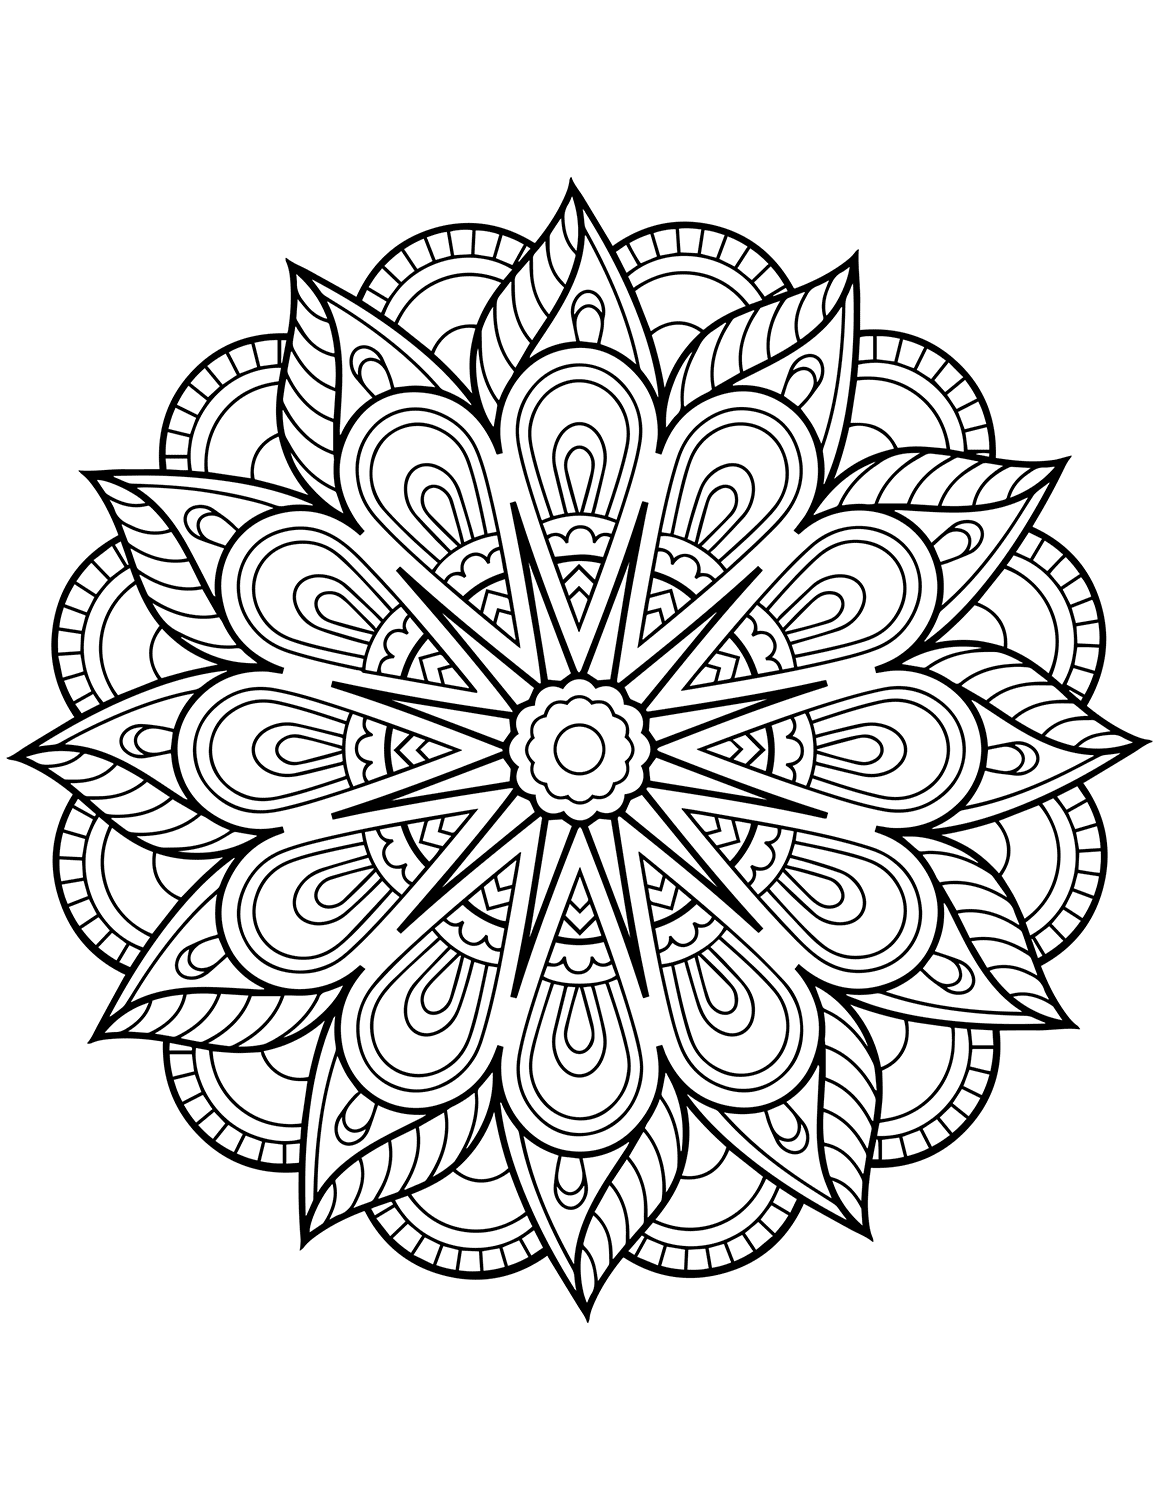 mandala coloring pages for adults free flower mandala coloring pages best coloring pages for kids mandala adults for coloring pages free